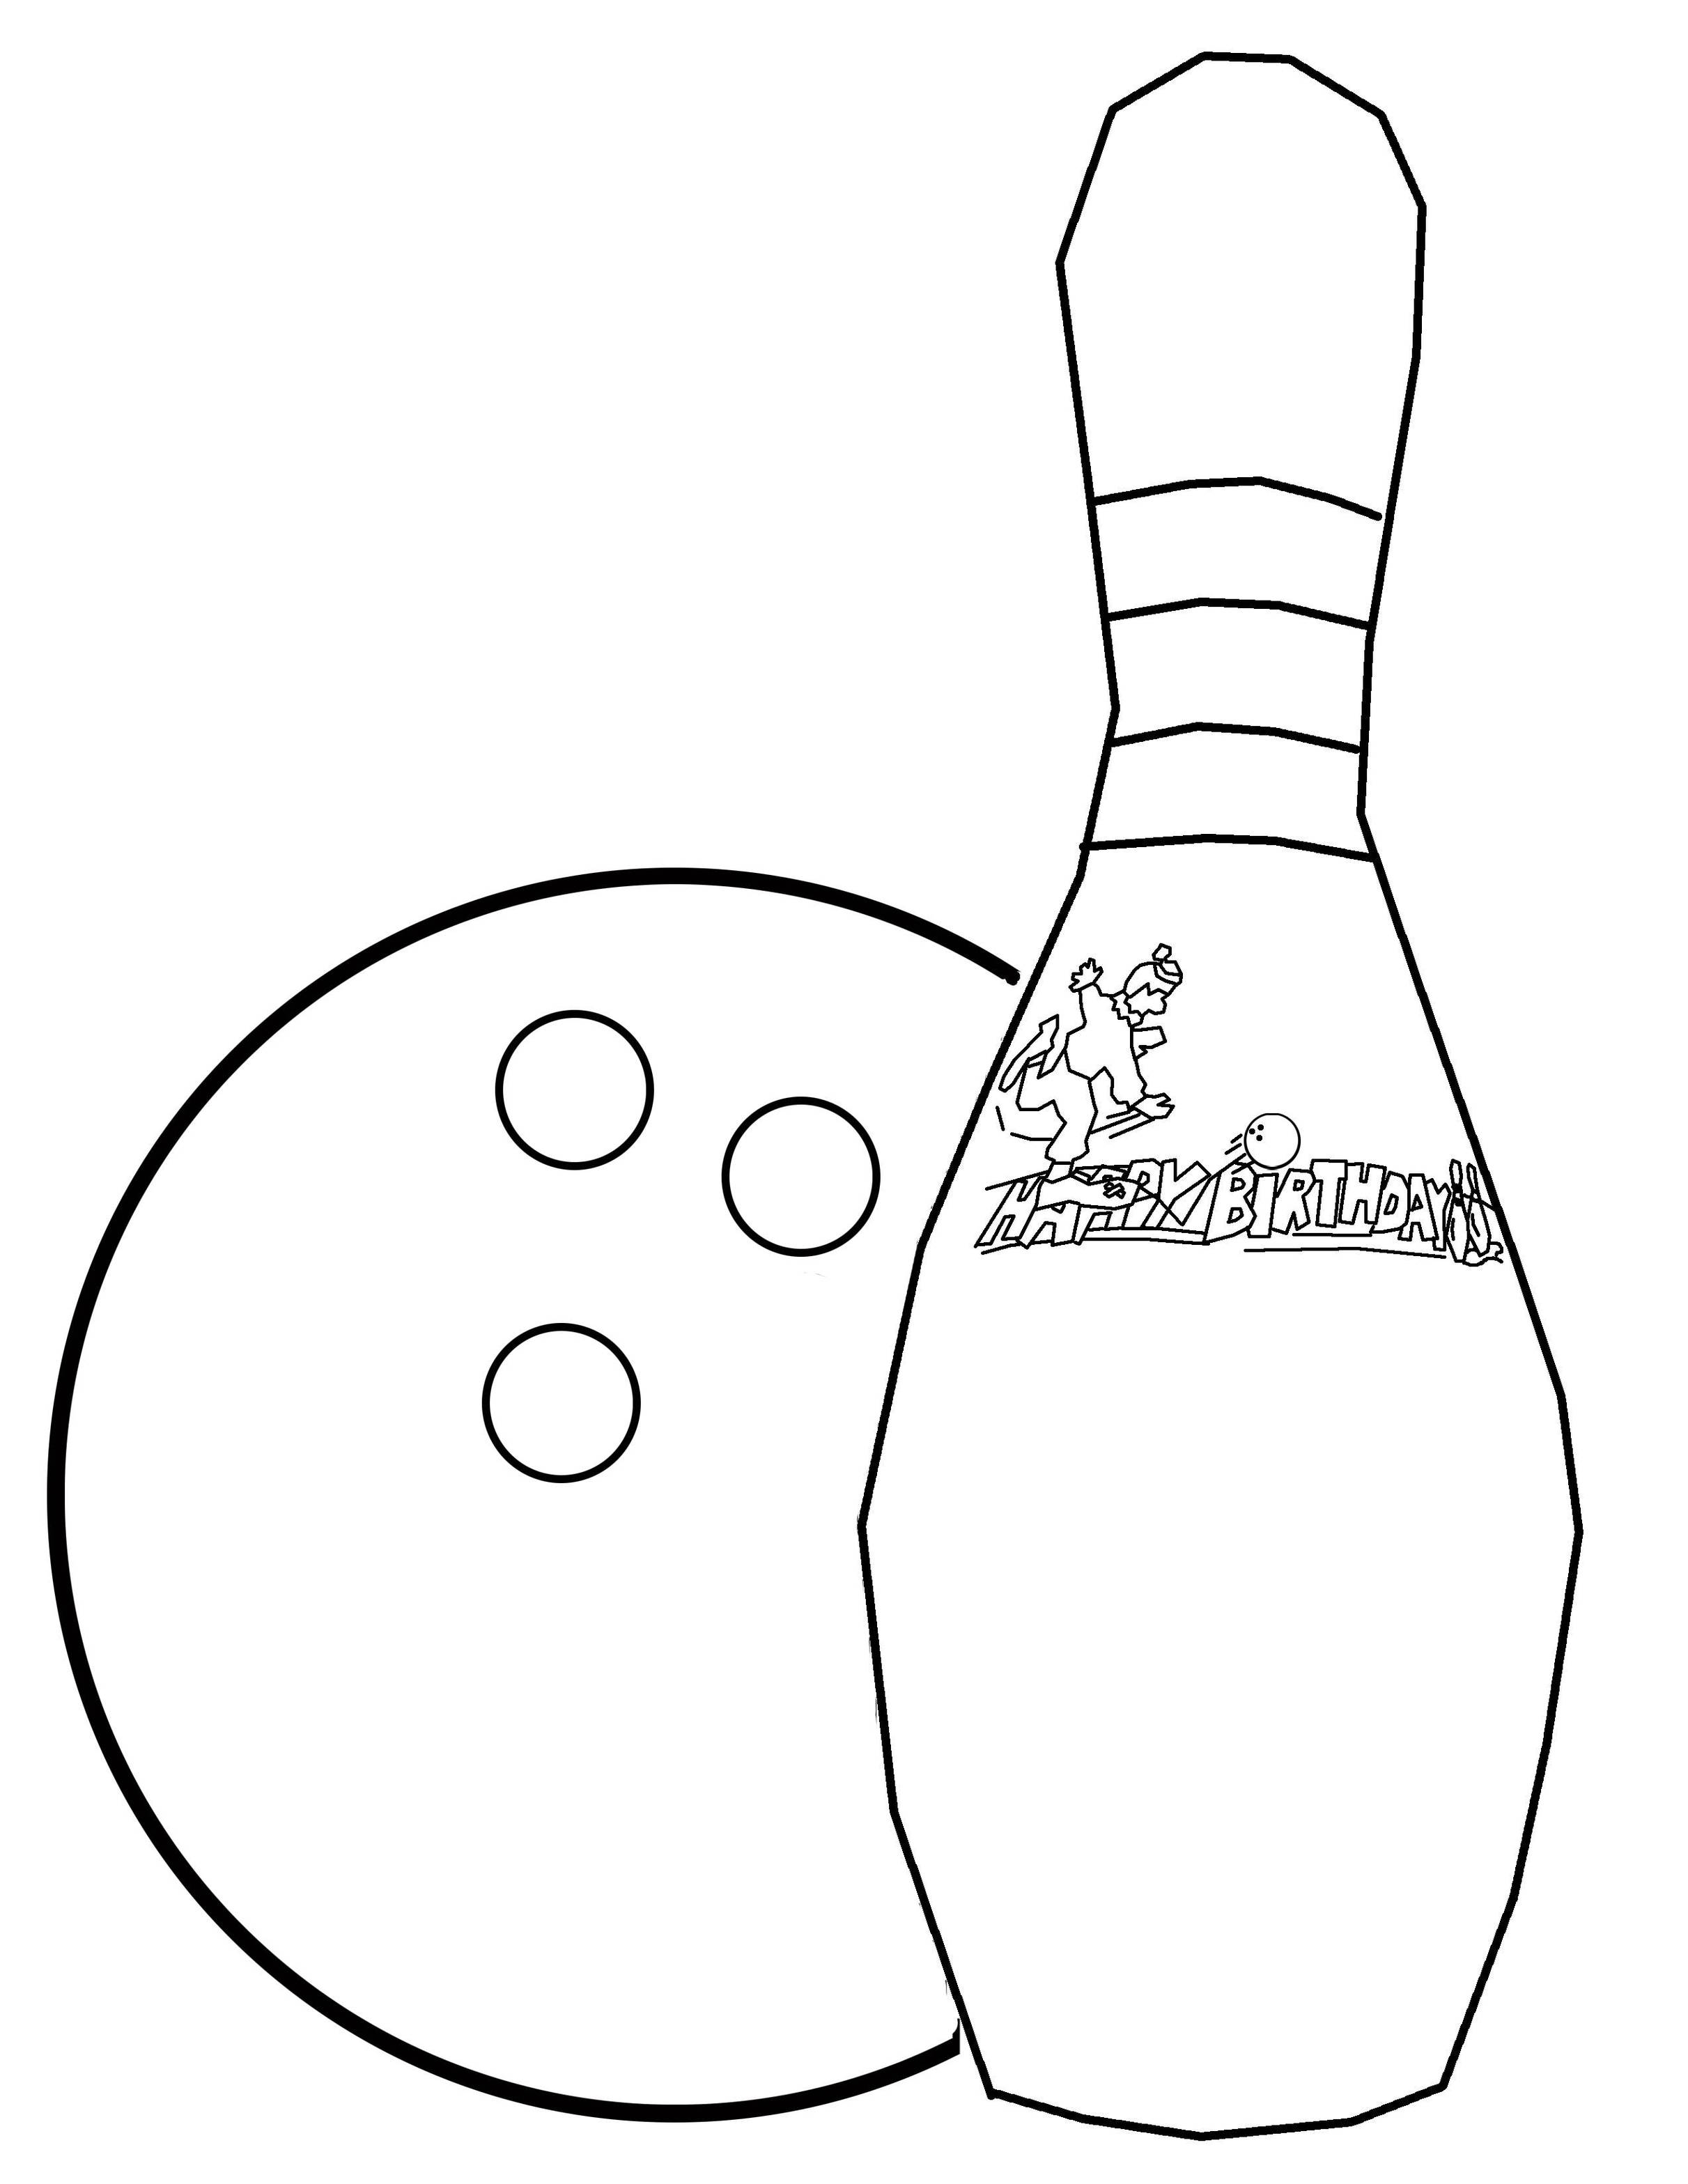 Bowling Pin Outline